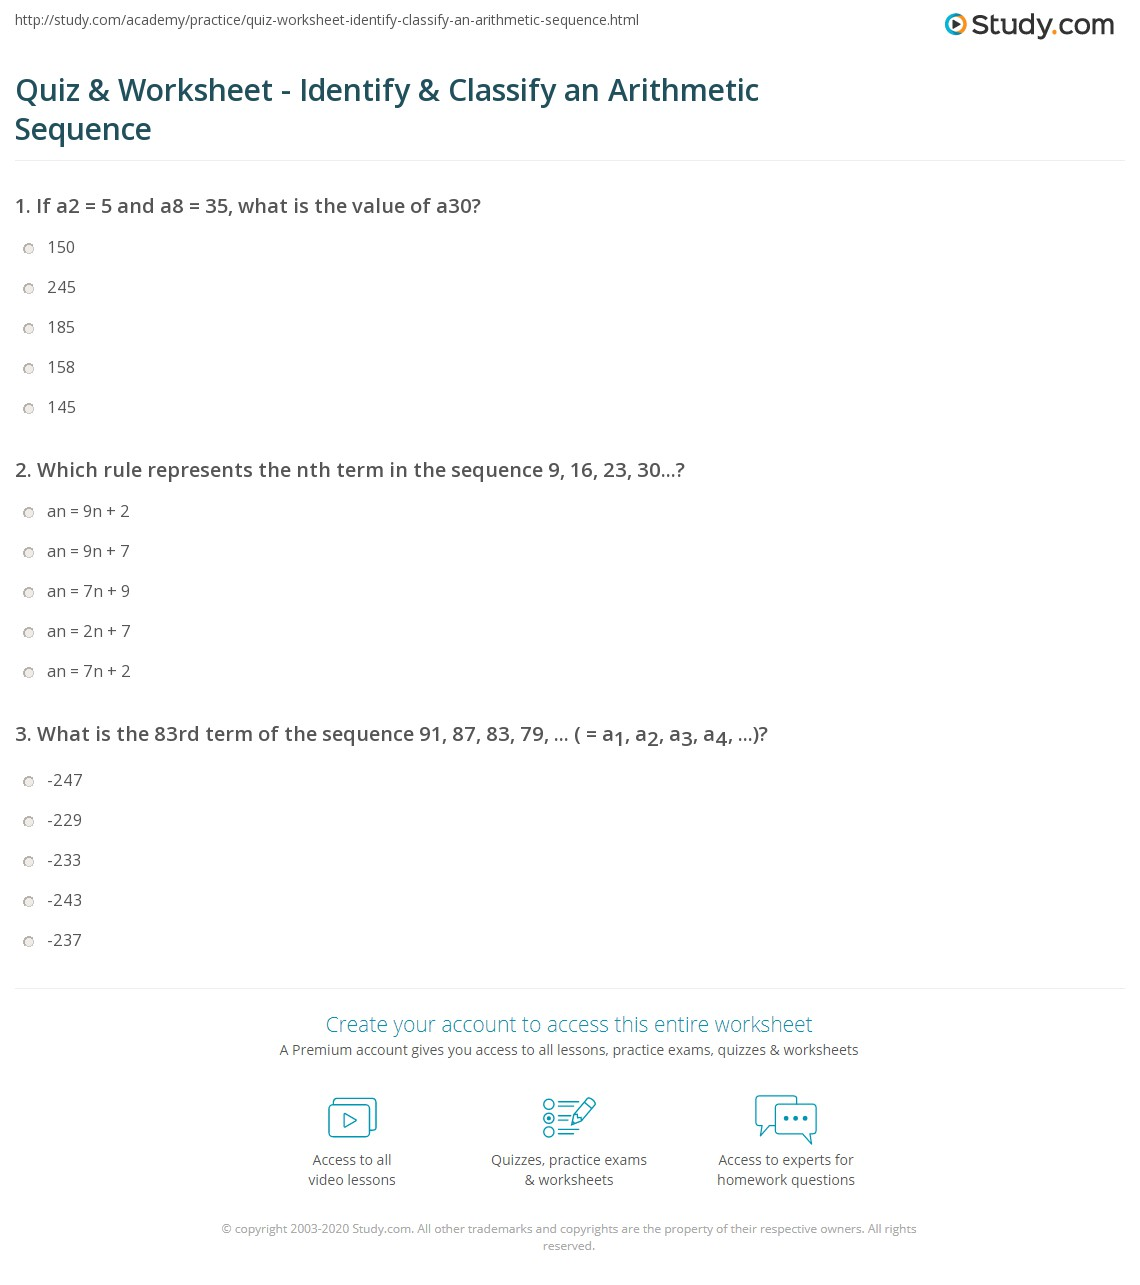 Quiz & Worksheet - Identify & Classify an Arithmetic Sequence ...